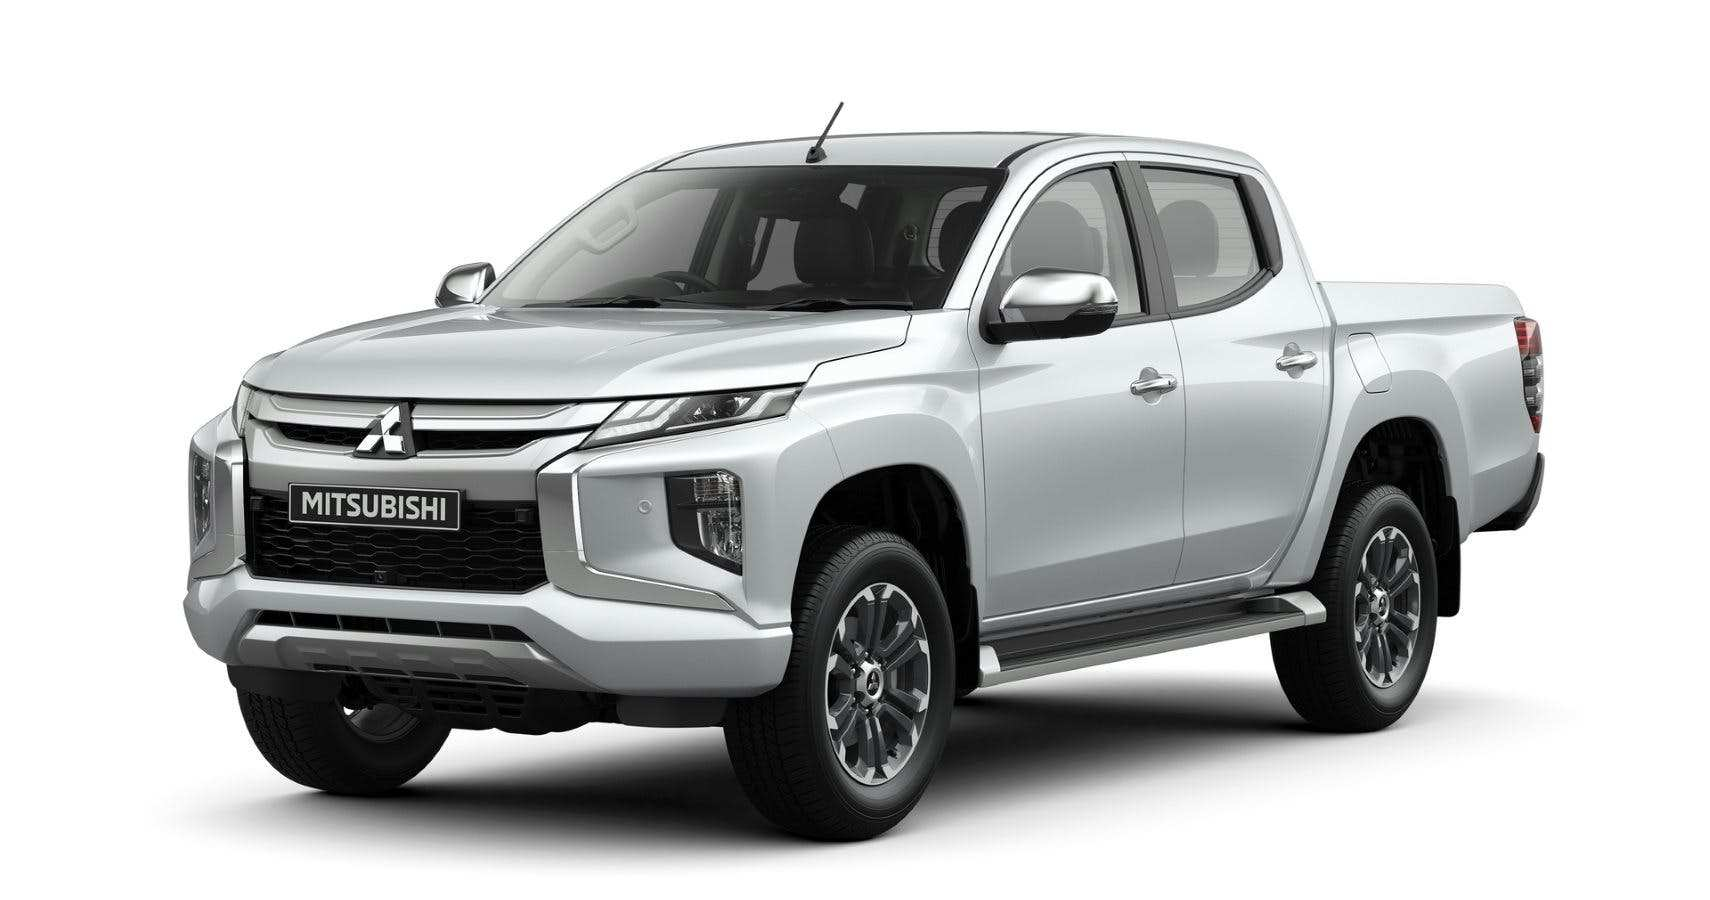 45 New Mitsubishi Pickup 2020 Images by Mitsubishi Pickup 2020